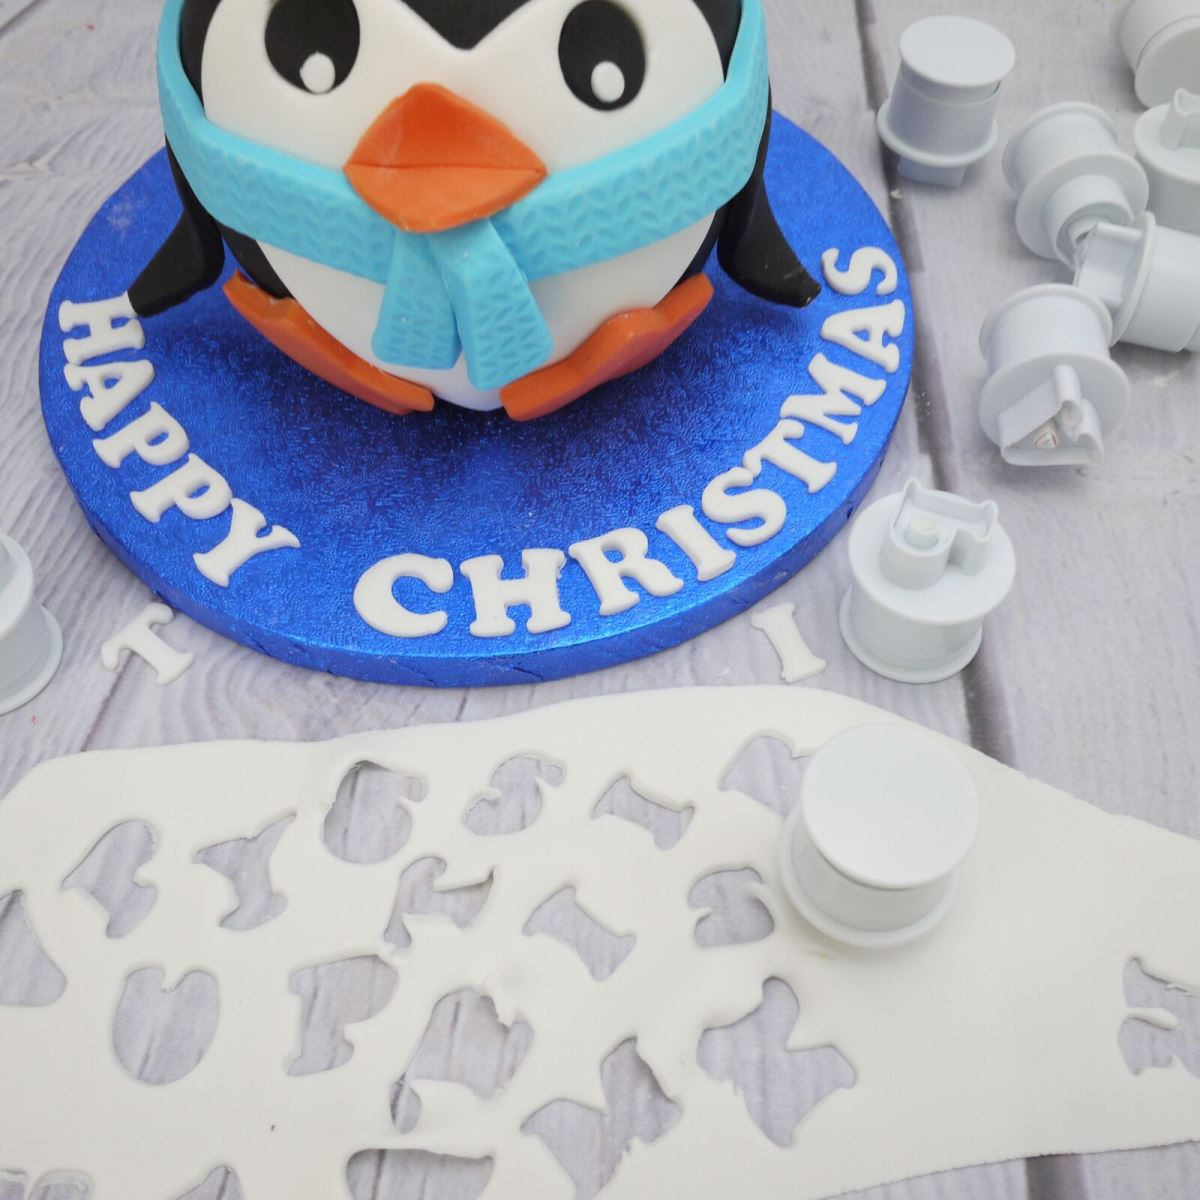 Penguin cake step 7